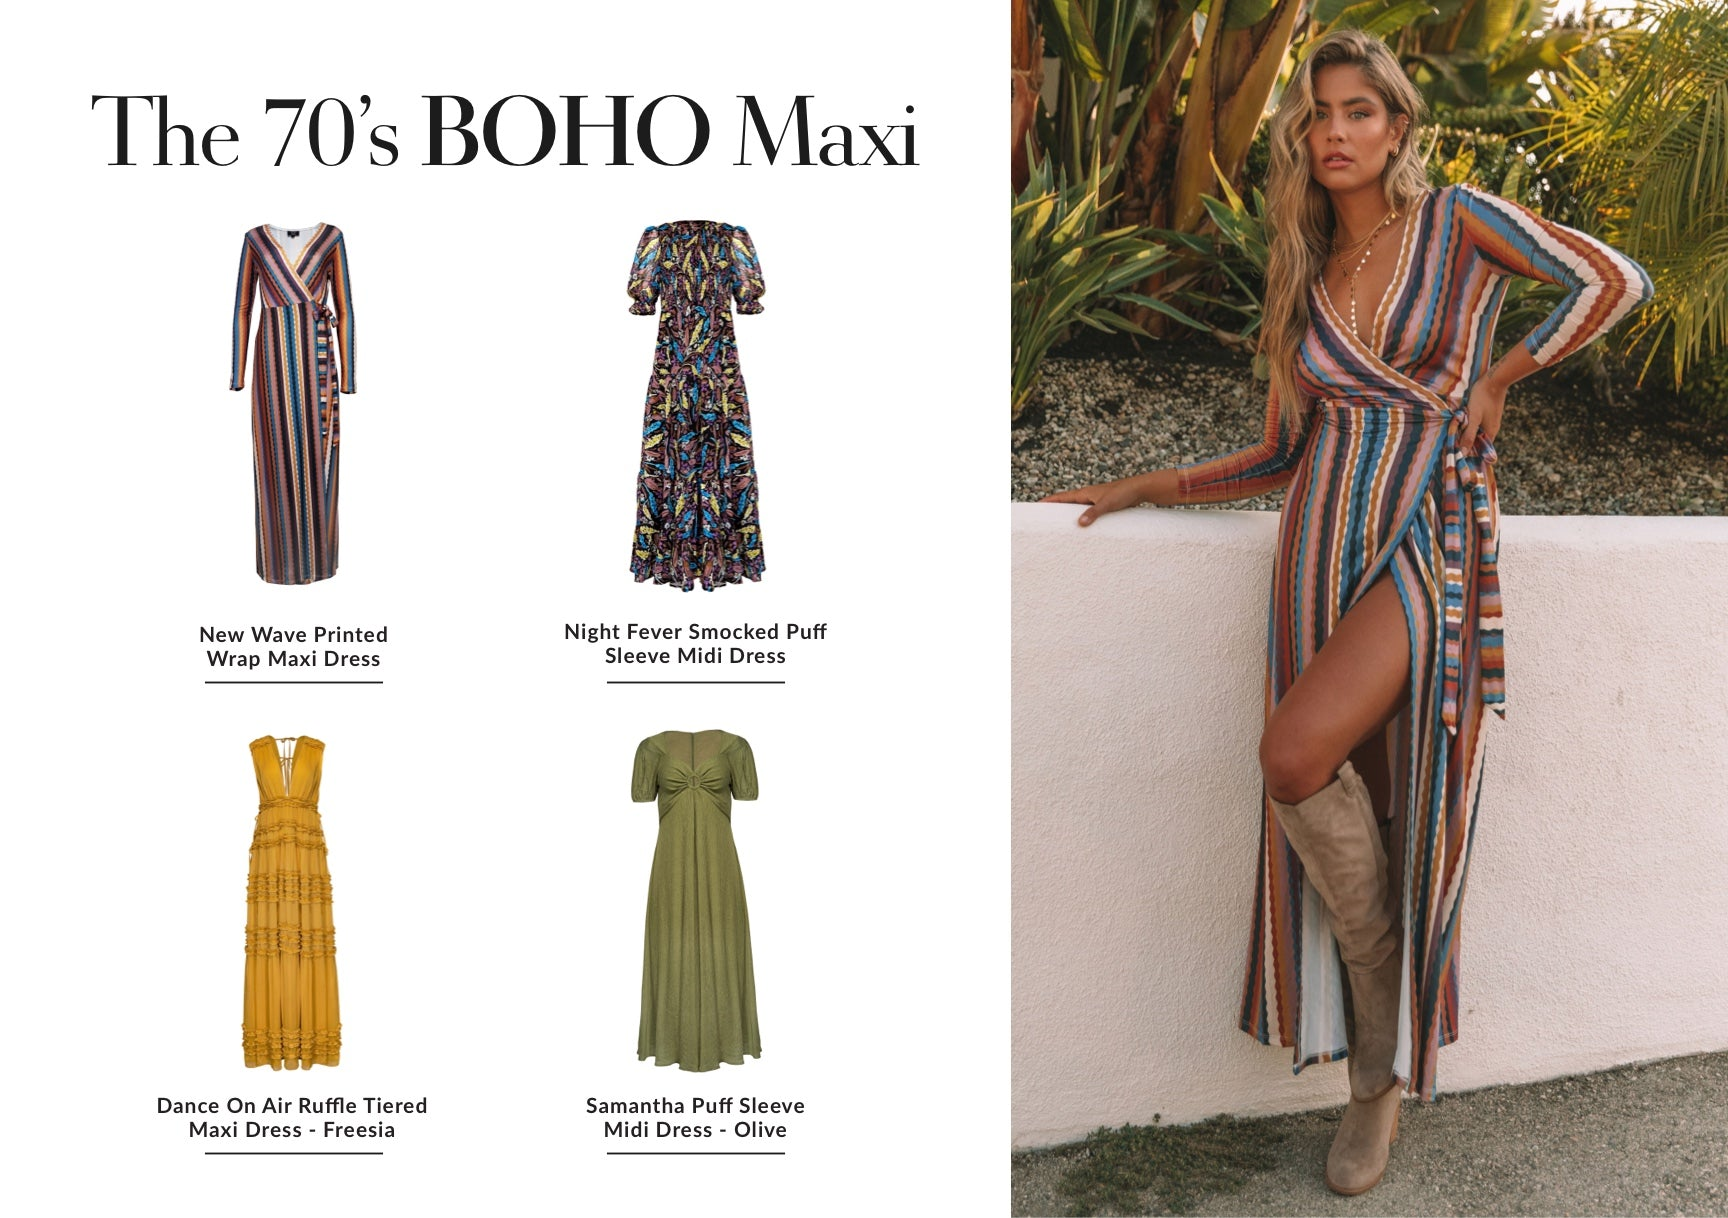 Don't mind us, we'll be pairing a retro, floral dress in a soft fall shade with a chunky black combat boot every day this season. The mix of 70's and boho brings all of the Stevie Nicks circa 1975 vibes we can only dream of. Patterns, stripes, and unique florals are all fun ways to diversify your maxi collection. Shop 70's Boho Dresses